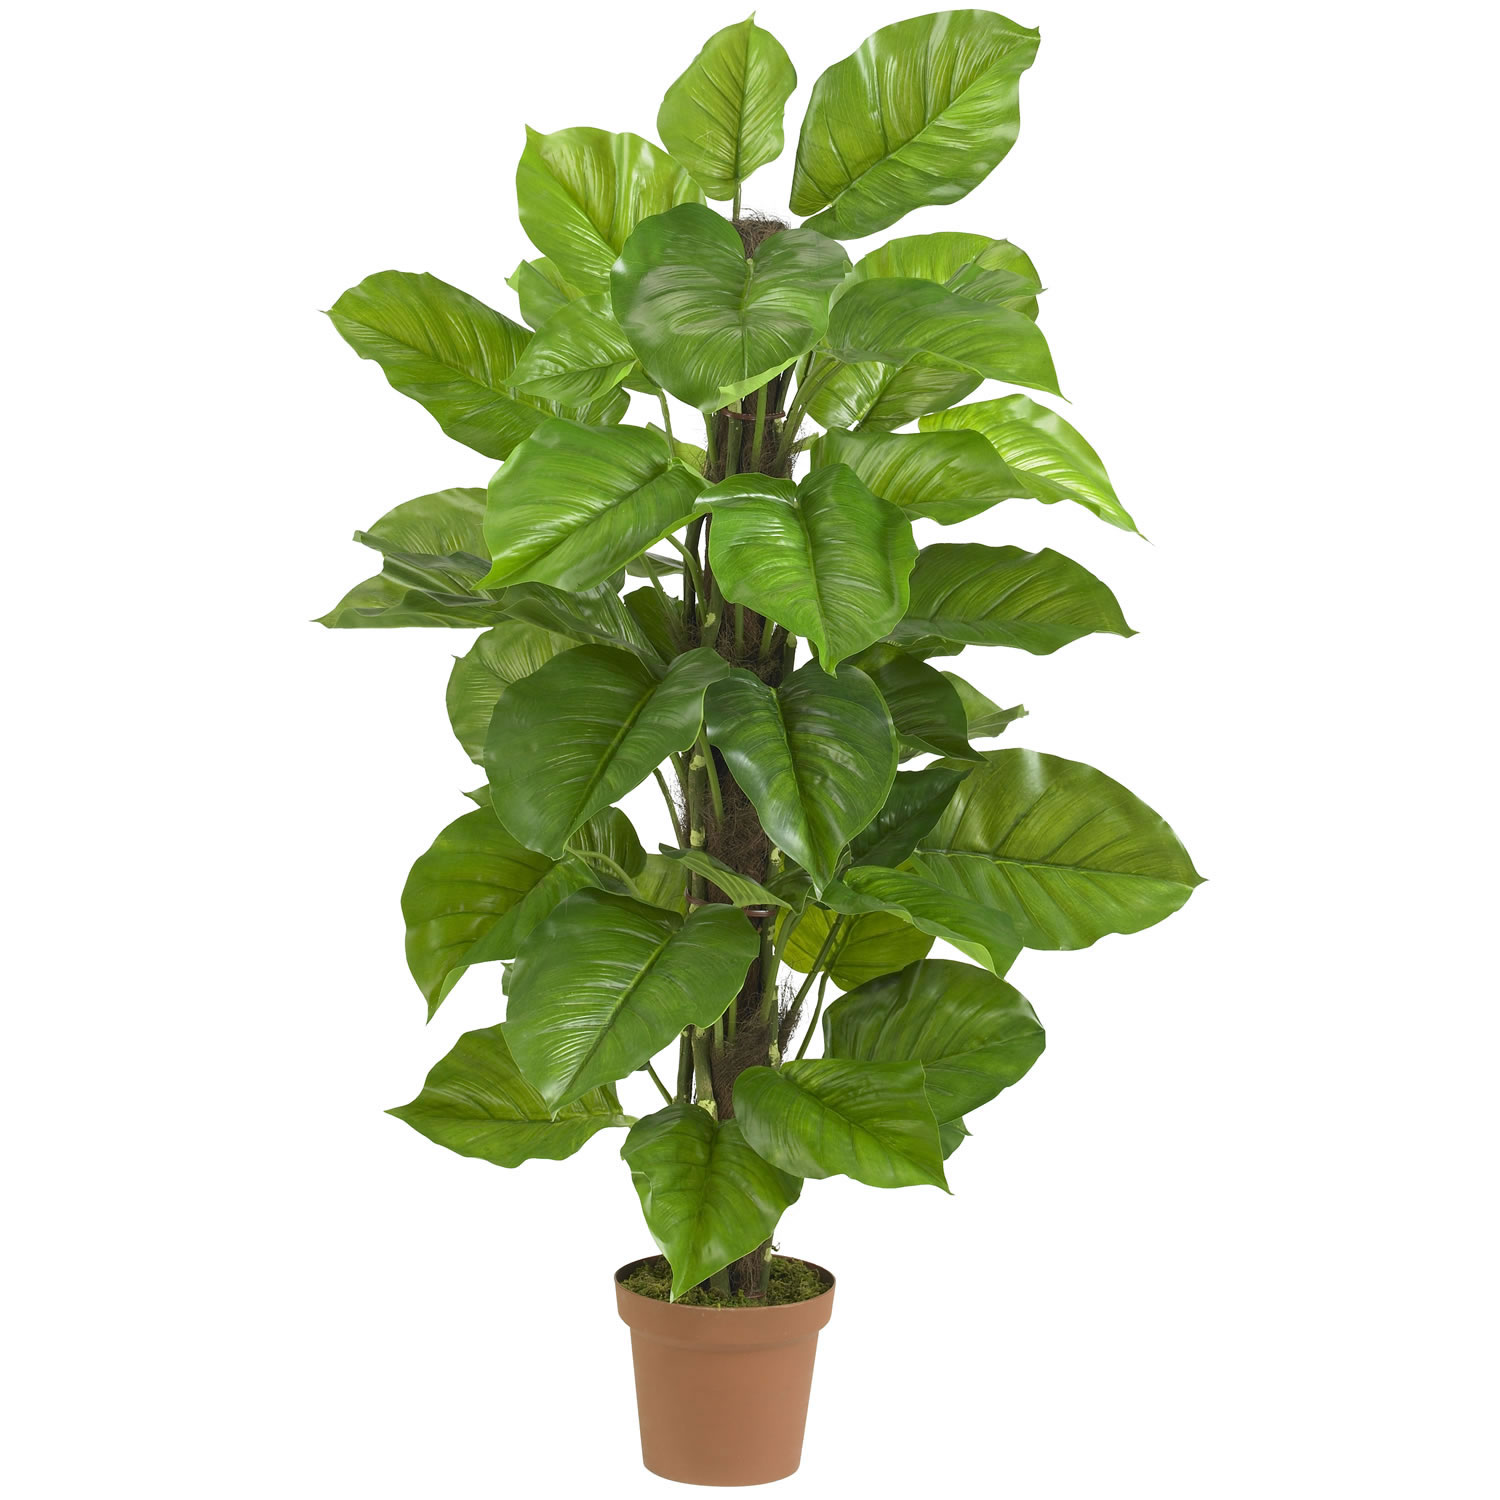 Big Pot Plants 52 Inch Large Leaf Philodendron Potted 6583